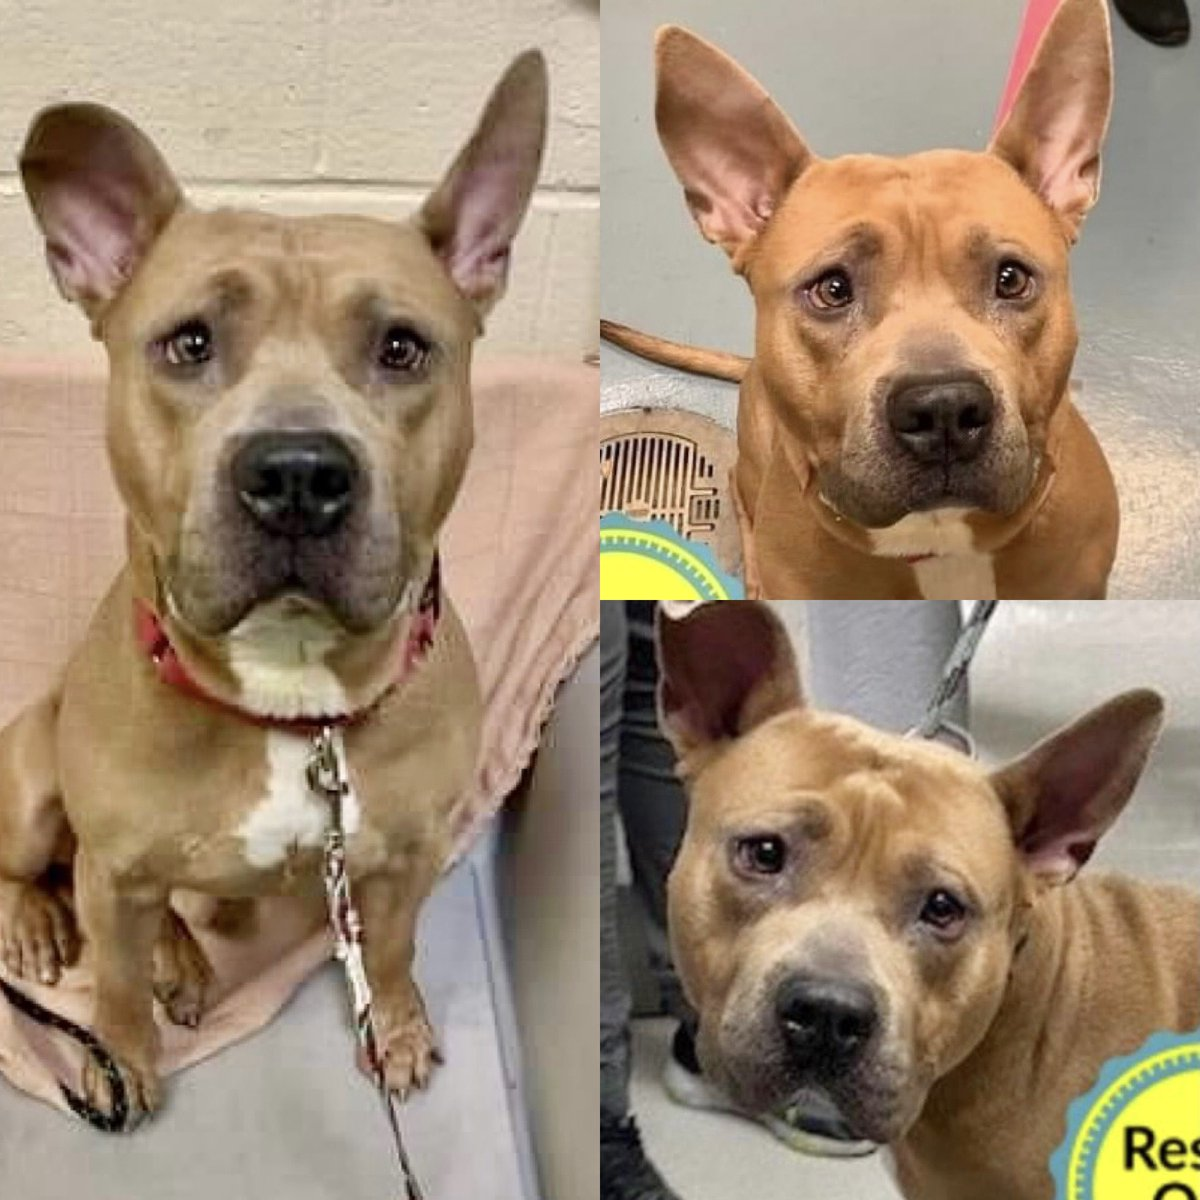 """UNTRAINED, LEFT TIED TO A BENCH BY HIS """"FAMILY,"""" KING PRESTO #111030 DIES SUNDAY. He's sad, scared, and on top of everything else he has Shelter Cold. He needs meds, help, training - and rescue pledges via @TomJumboGrumbo -not death. PLEASE RT KING PRESTO!"""